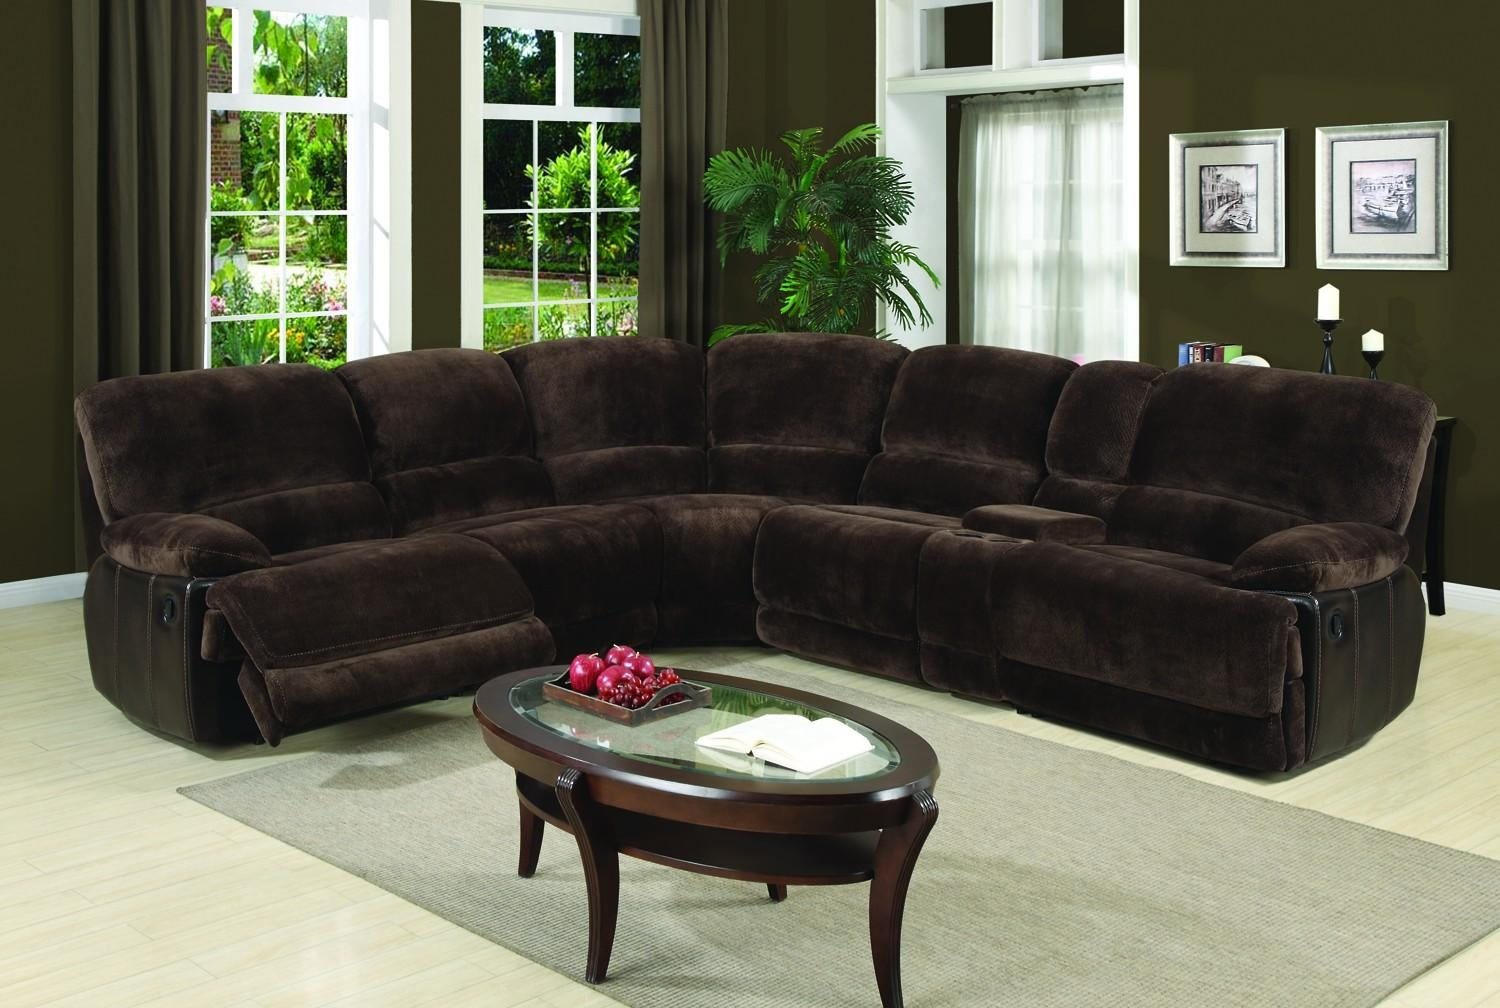 Eli Dark Brown 6 Piece Sectional Sofa For $1, (Image 10 of 20)